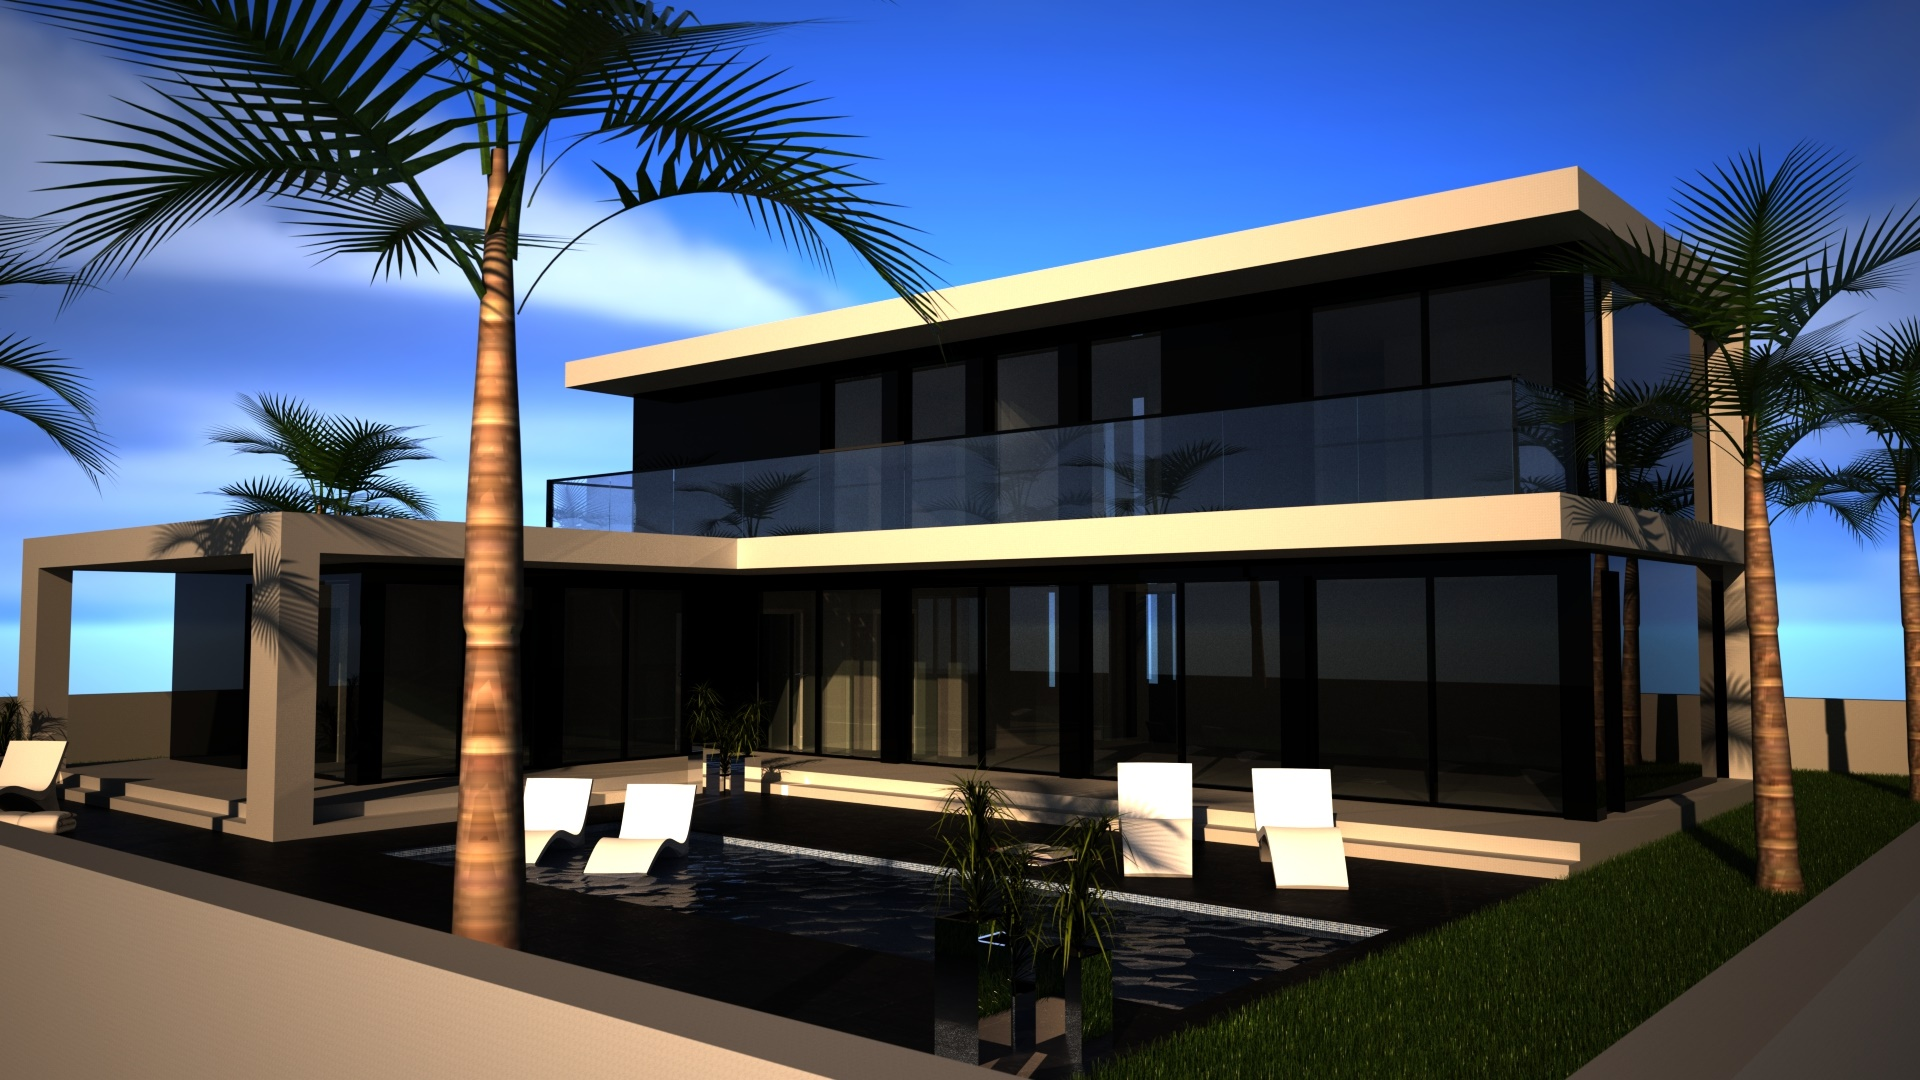 4 bedroom villa for sale, Santa Ponsa, Mallorca